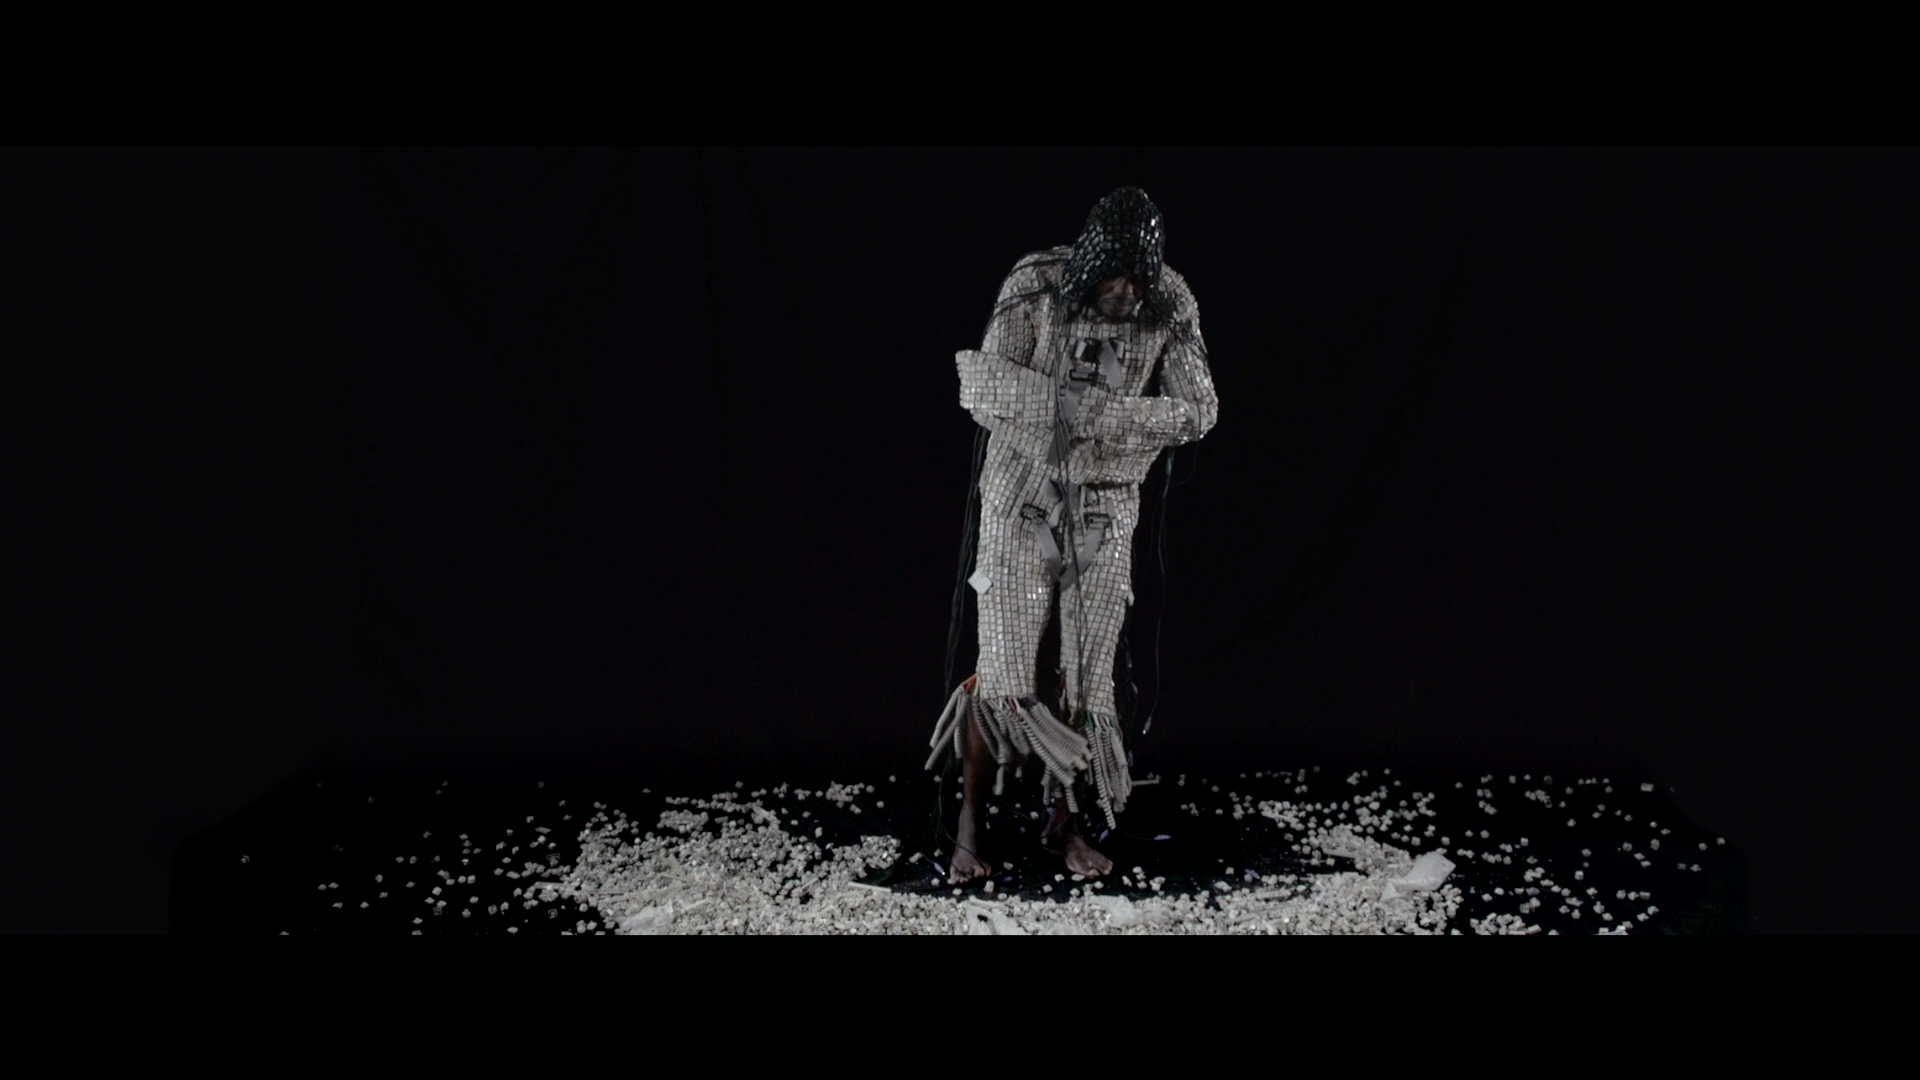 Maurice Mbikayi, Web Jacket (film still), 2015, 9 min. Courtesy of the artist and Officine dell'Immagine